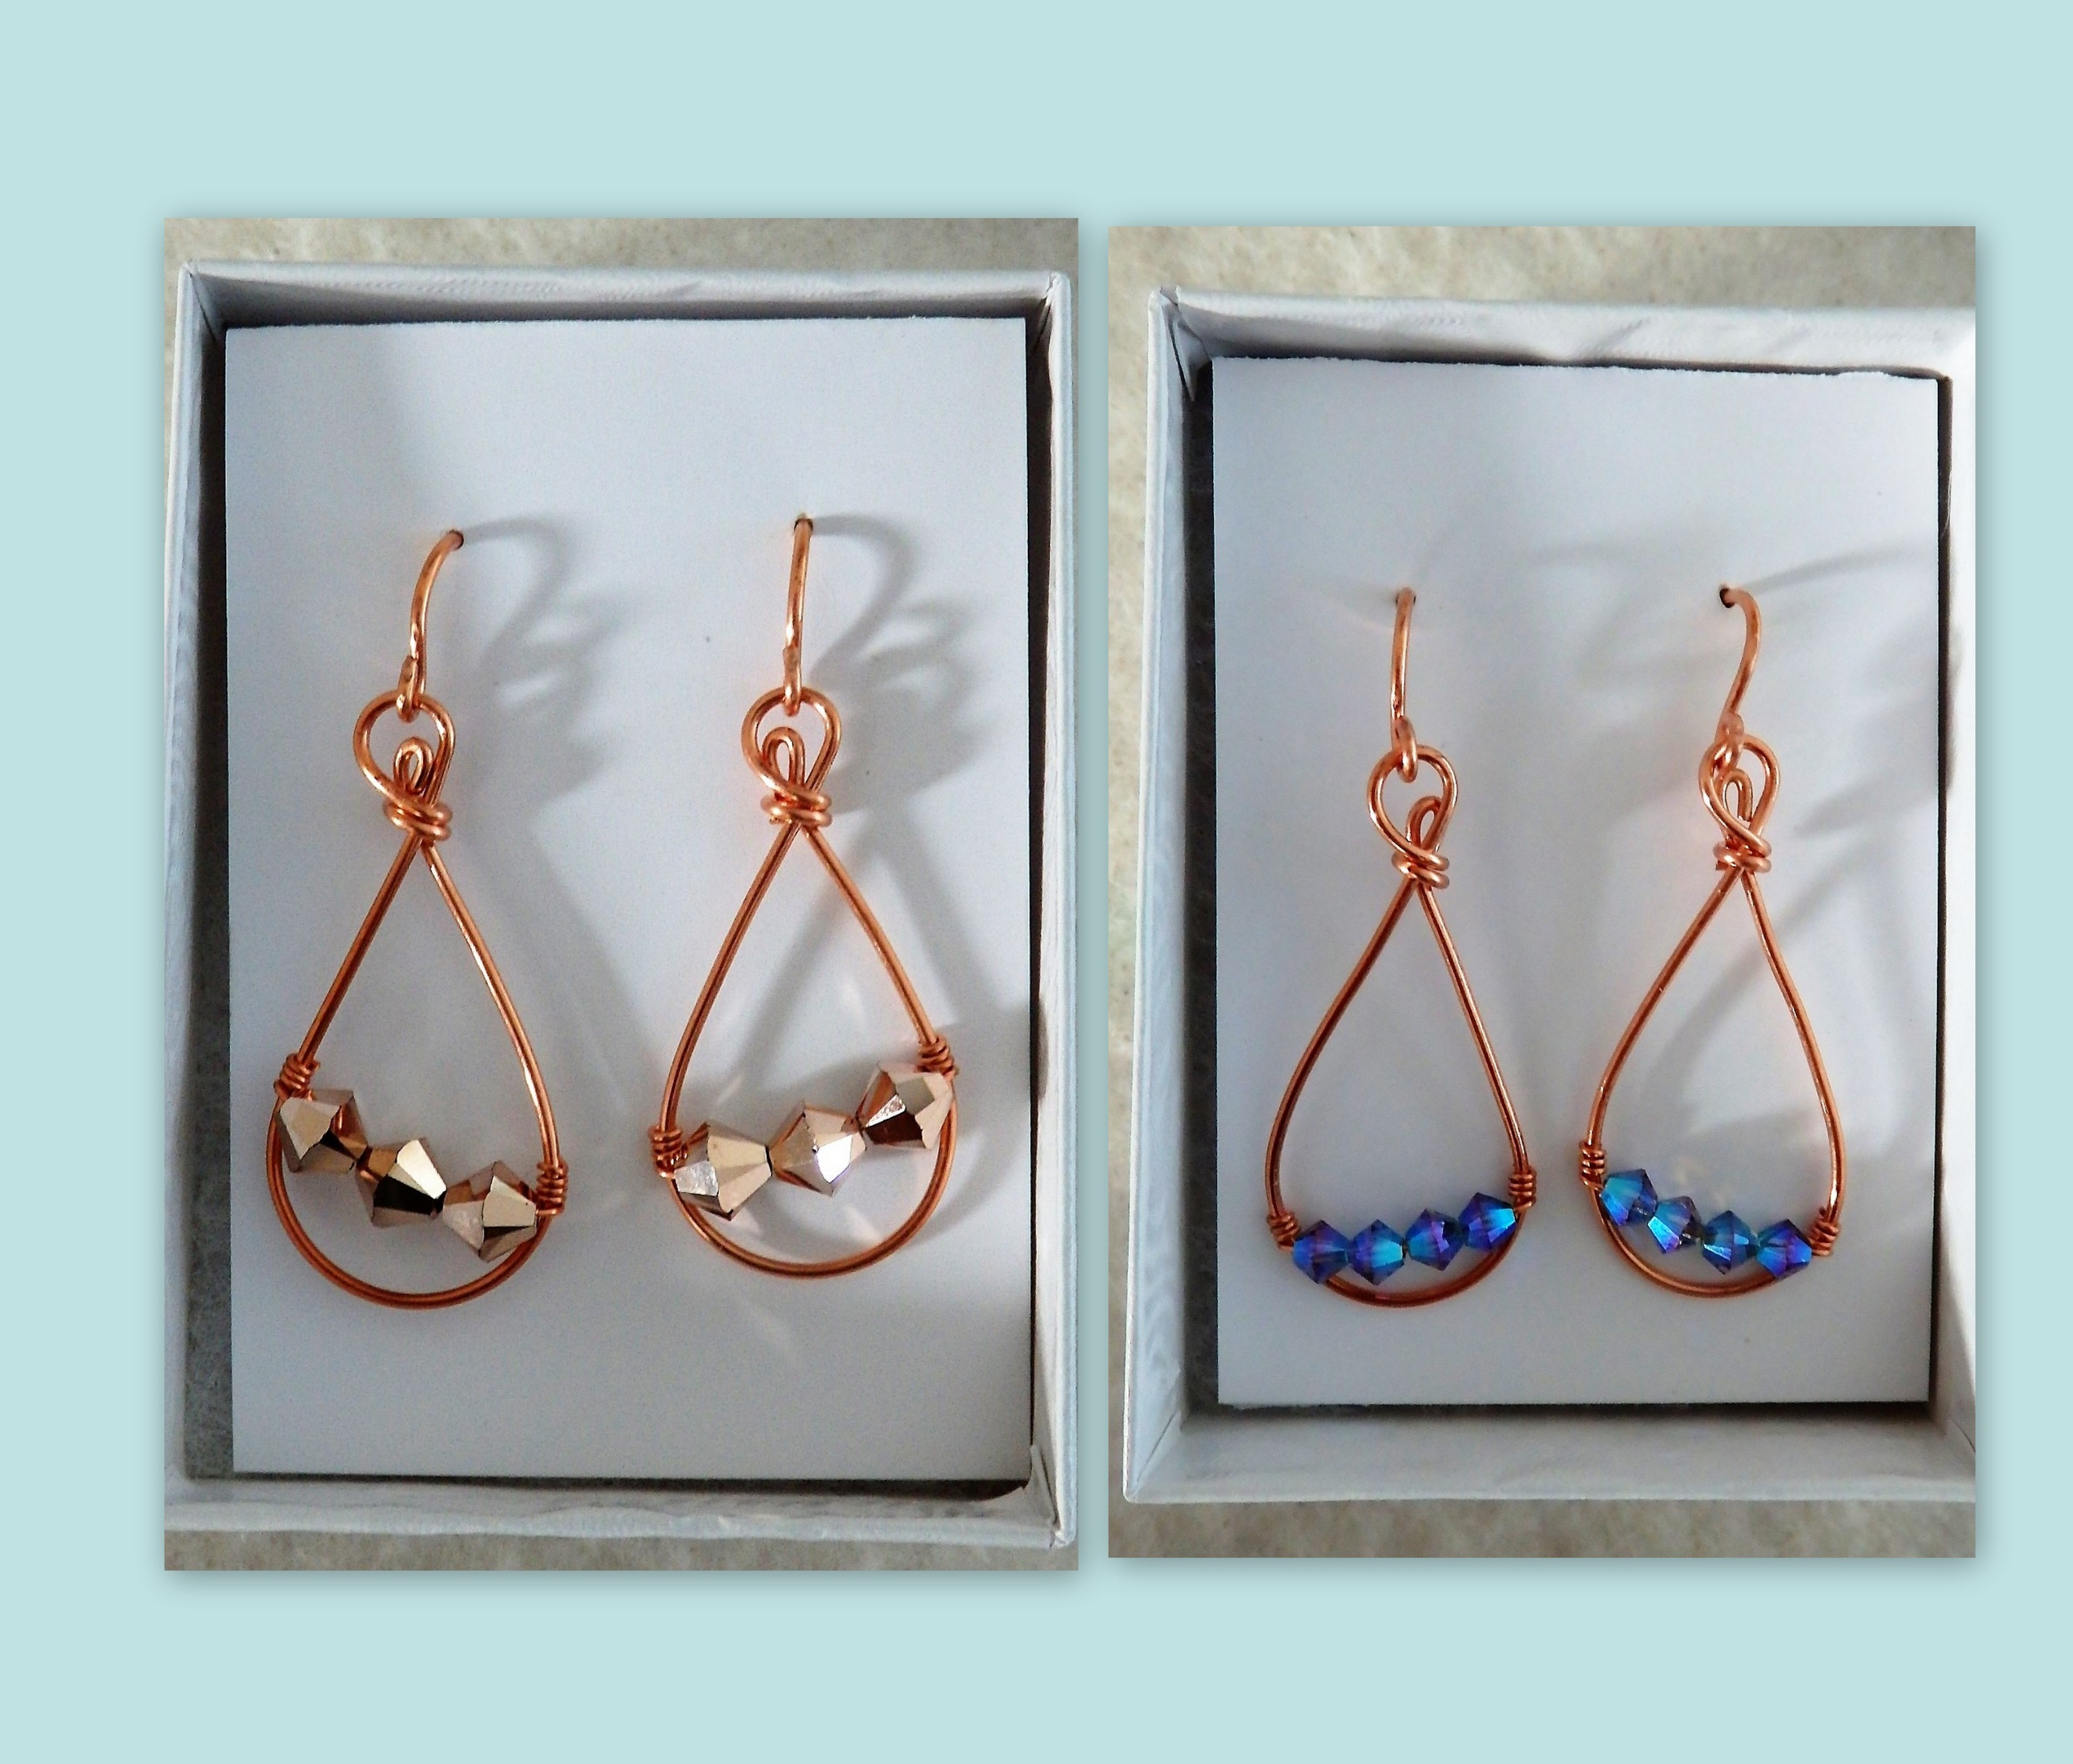 Copper/bead earrings